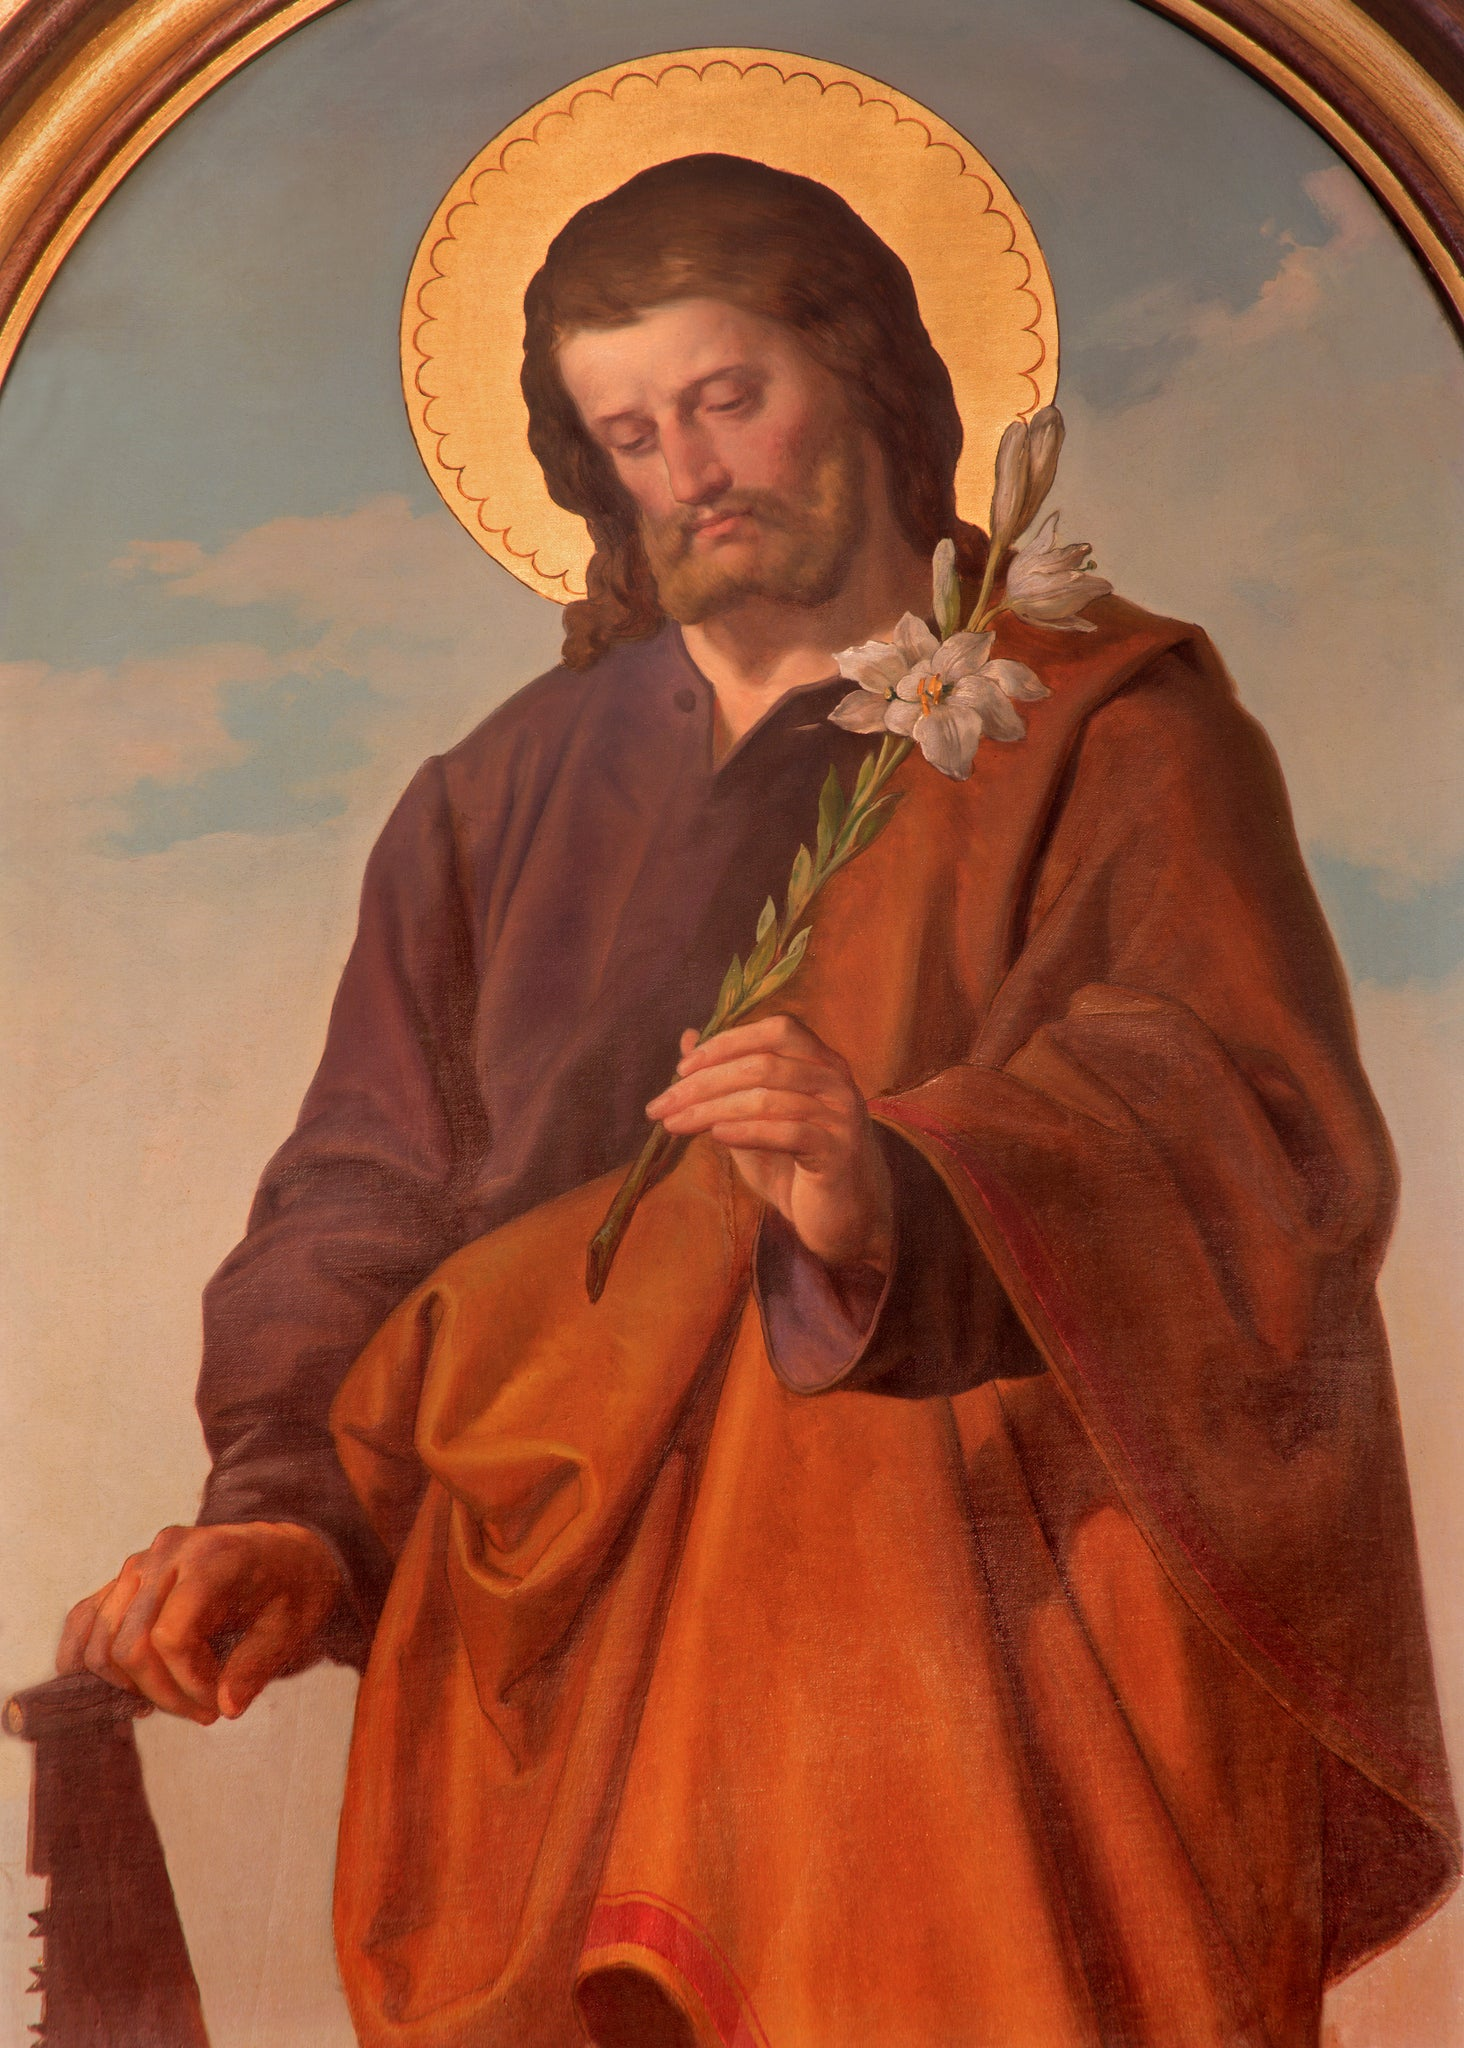 THE EXTRAORDINARY BEAUTY OF THE ROSARIES MADE IN HONOR OF ST. JOSEPH